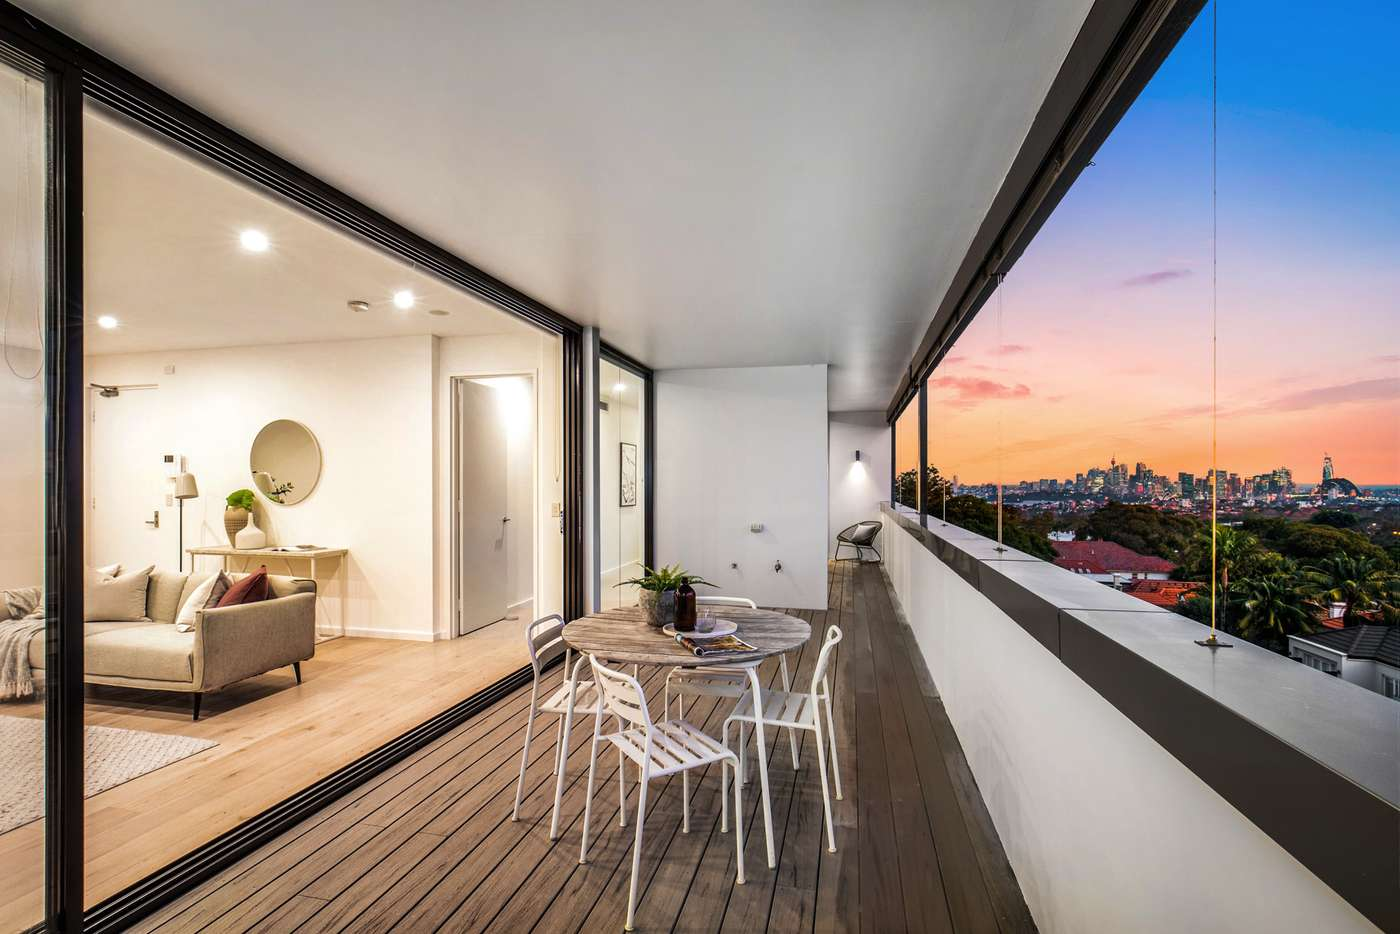 Main view of Homely apartment listing, 16/5 Gurrigal Street, Mosman NSW 2088